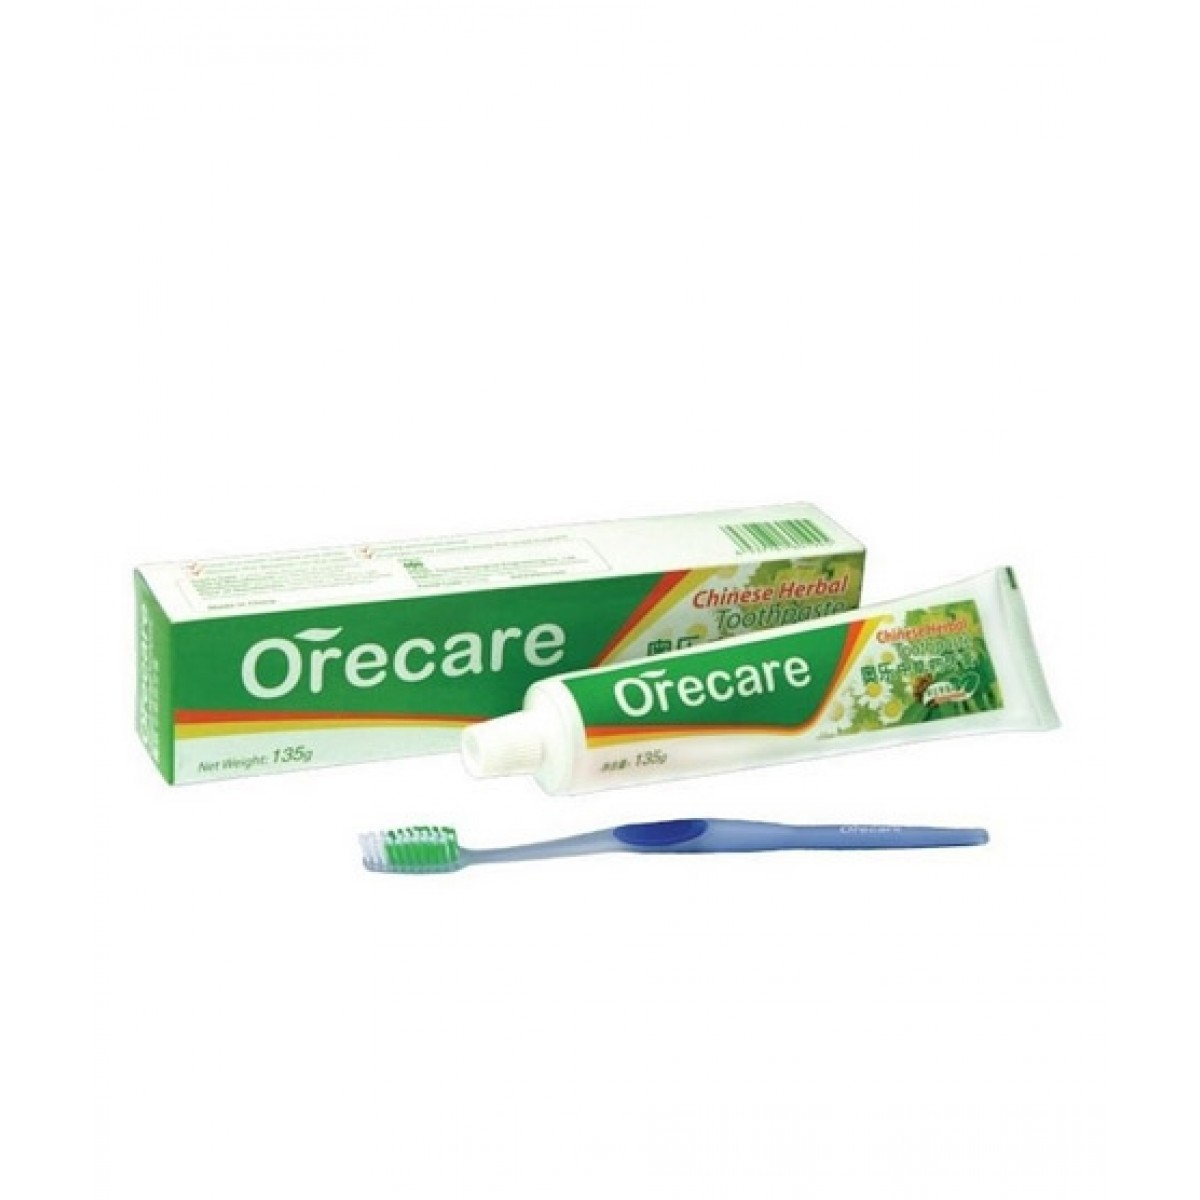 Tiens Orecare Herbal Toothpaste Price In Pakistan Buy Tiens